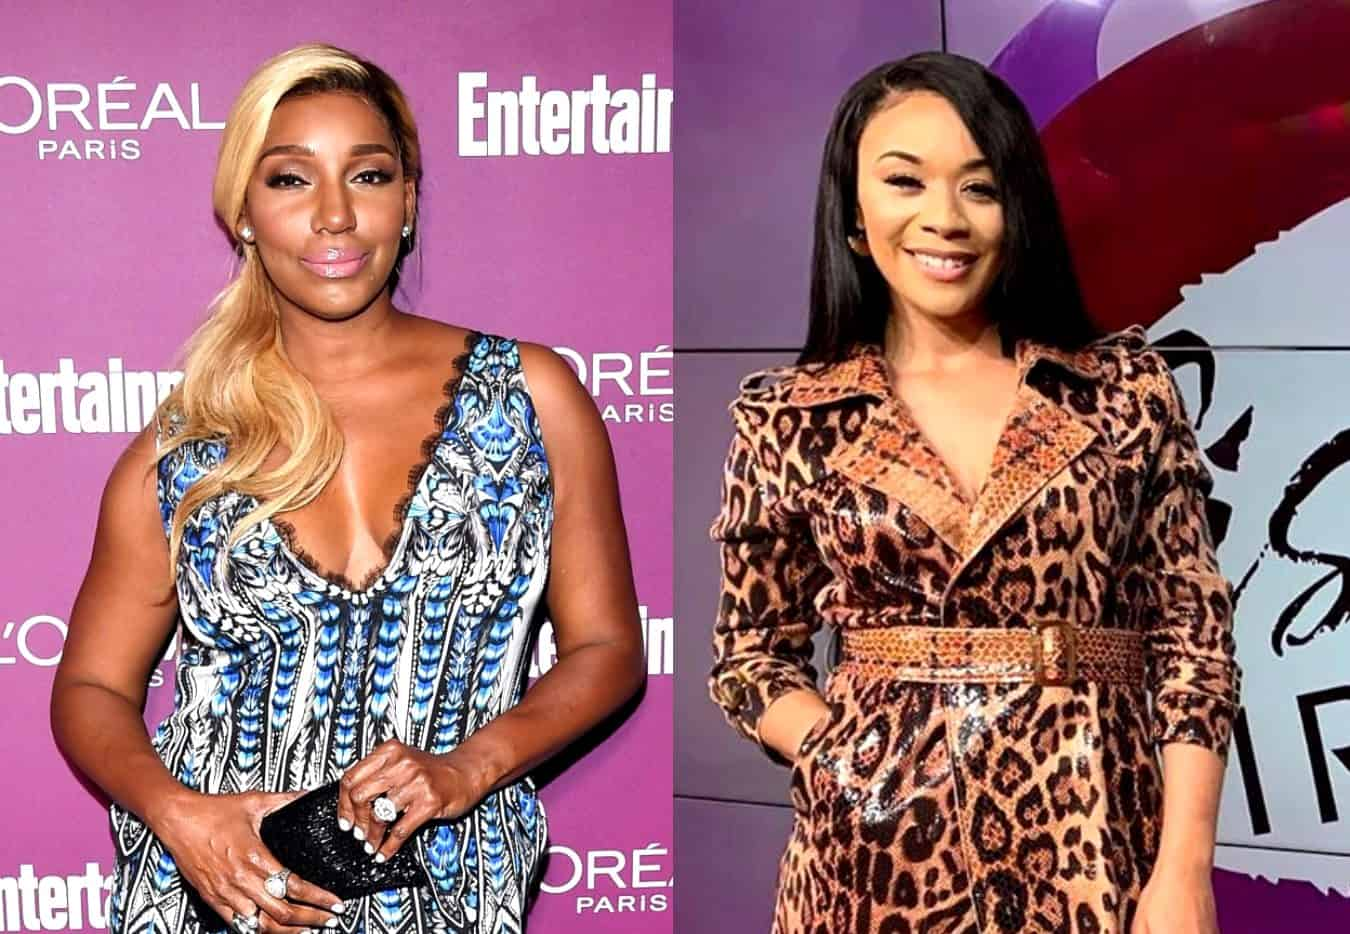 """Nene Leakes Dishes on RHOA Reunion Drama and Claims Yovanna Momplaisir Lied to Be on the Show as Yovanna Addresses Her Feud With Nene Over """"Snakegate"""" and Says She's """"Not Afraid"""" of Her"""